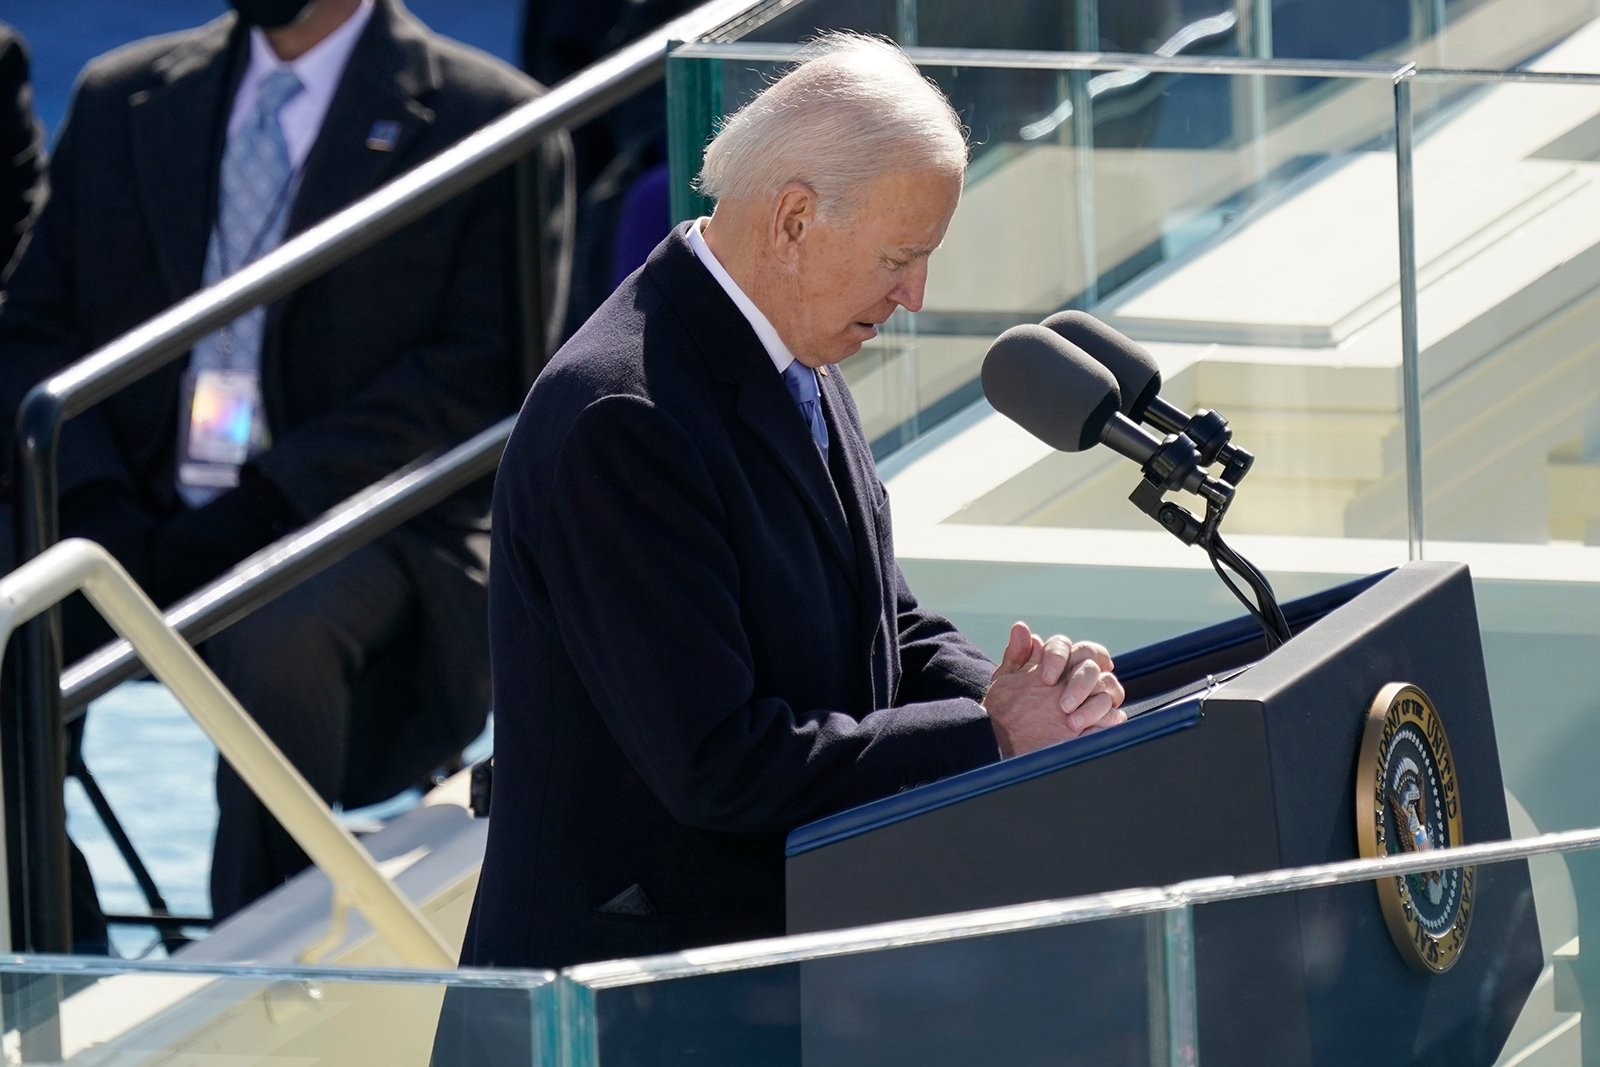 President Joe Biden bows his head as he speaks during the 59th Presidential Inauguration at the U.S. Capitol in Washington, Wednesday, Jan. 20, 2021(AP Photo/Carolyn Kaster)